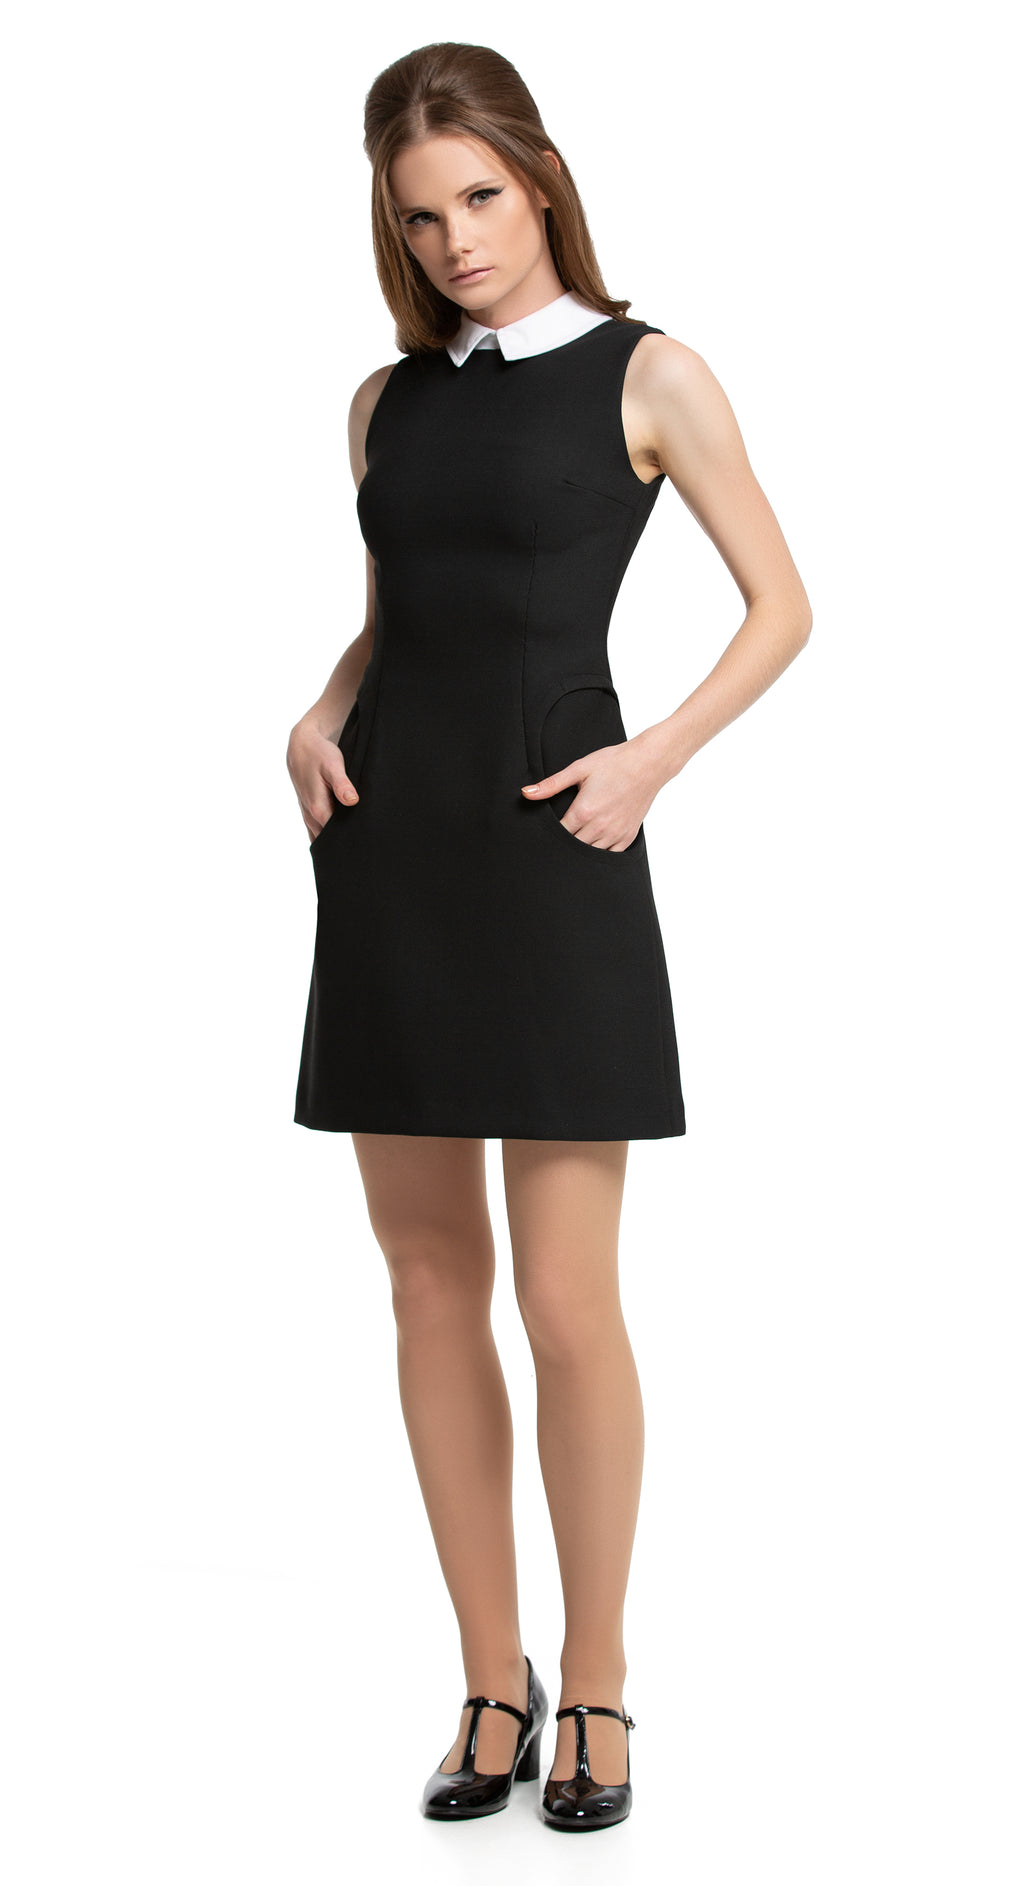 This little black fitted Spring dress has functioning mod circular pockets and a petite white collar which completes this simple, sharp and versatile piece for an easy to accessorize day to night look. Wear with the matching coat to complete the outfit.  Choose bespoke to add sleeves or for a different colour combination.